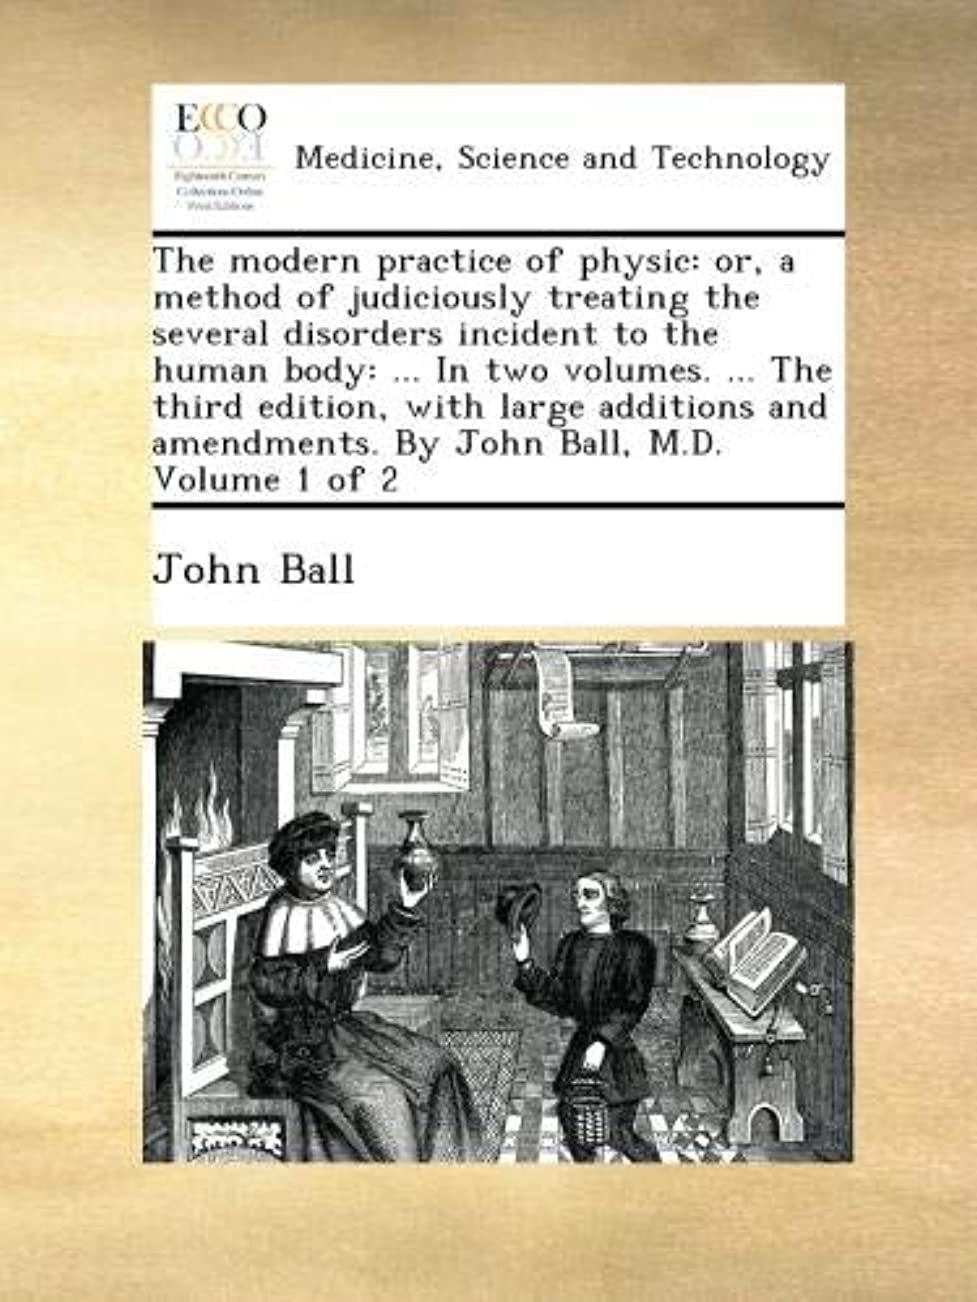 マオリ太平洋諸島喜んでThe modern practice of physic: or, a method of judiciously treating the several disorders incident to the human body: ... In two volumes. ... The third edition, with large additions and amendments. By John Ball, M.D.  Volume 1 of 2